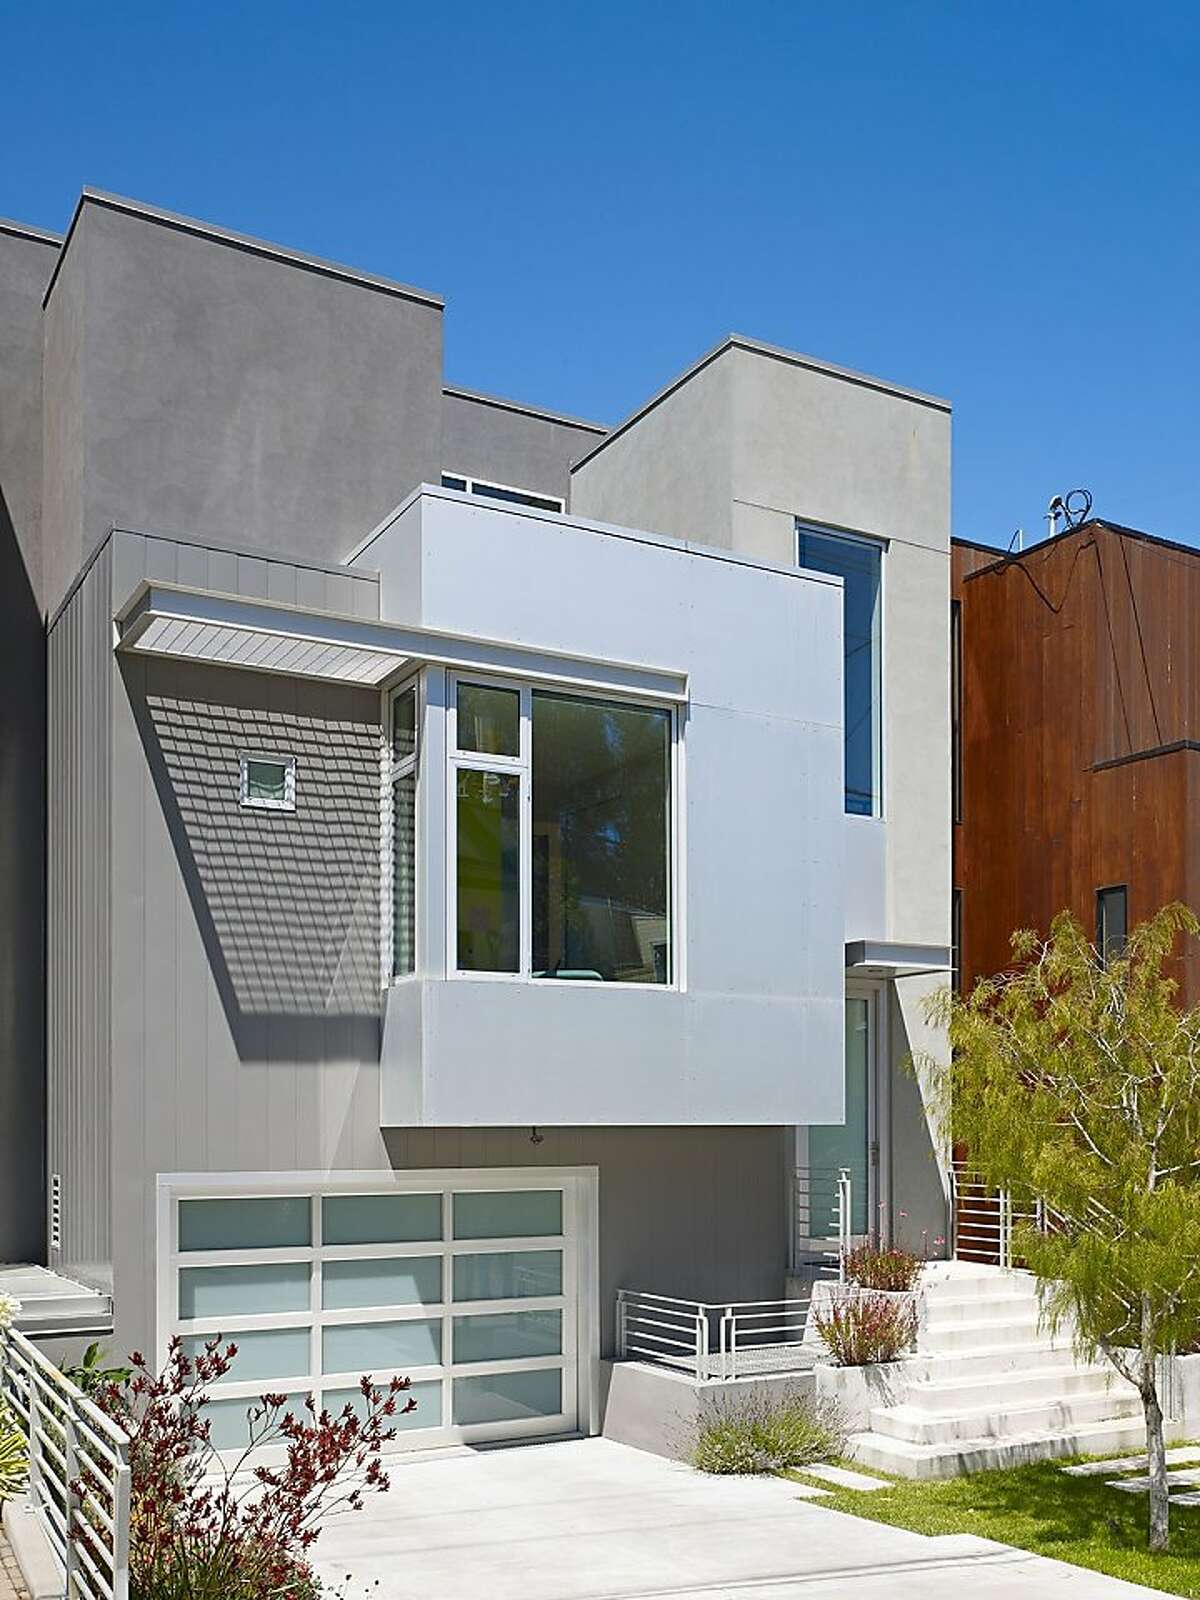 Zack de Vito Architecture and Construction's Bernal Heights Residence is featured on the AIASF's home tour.